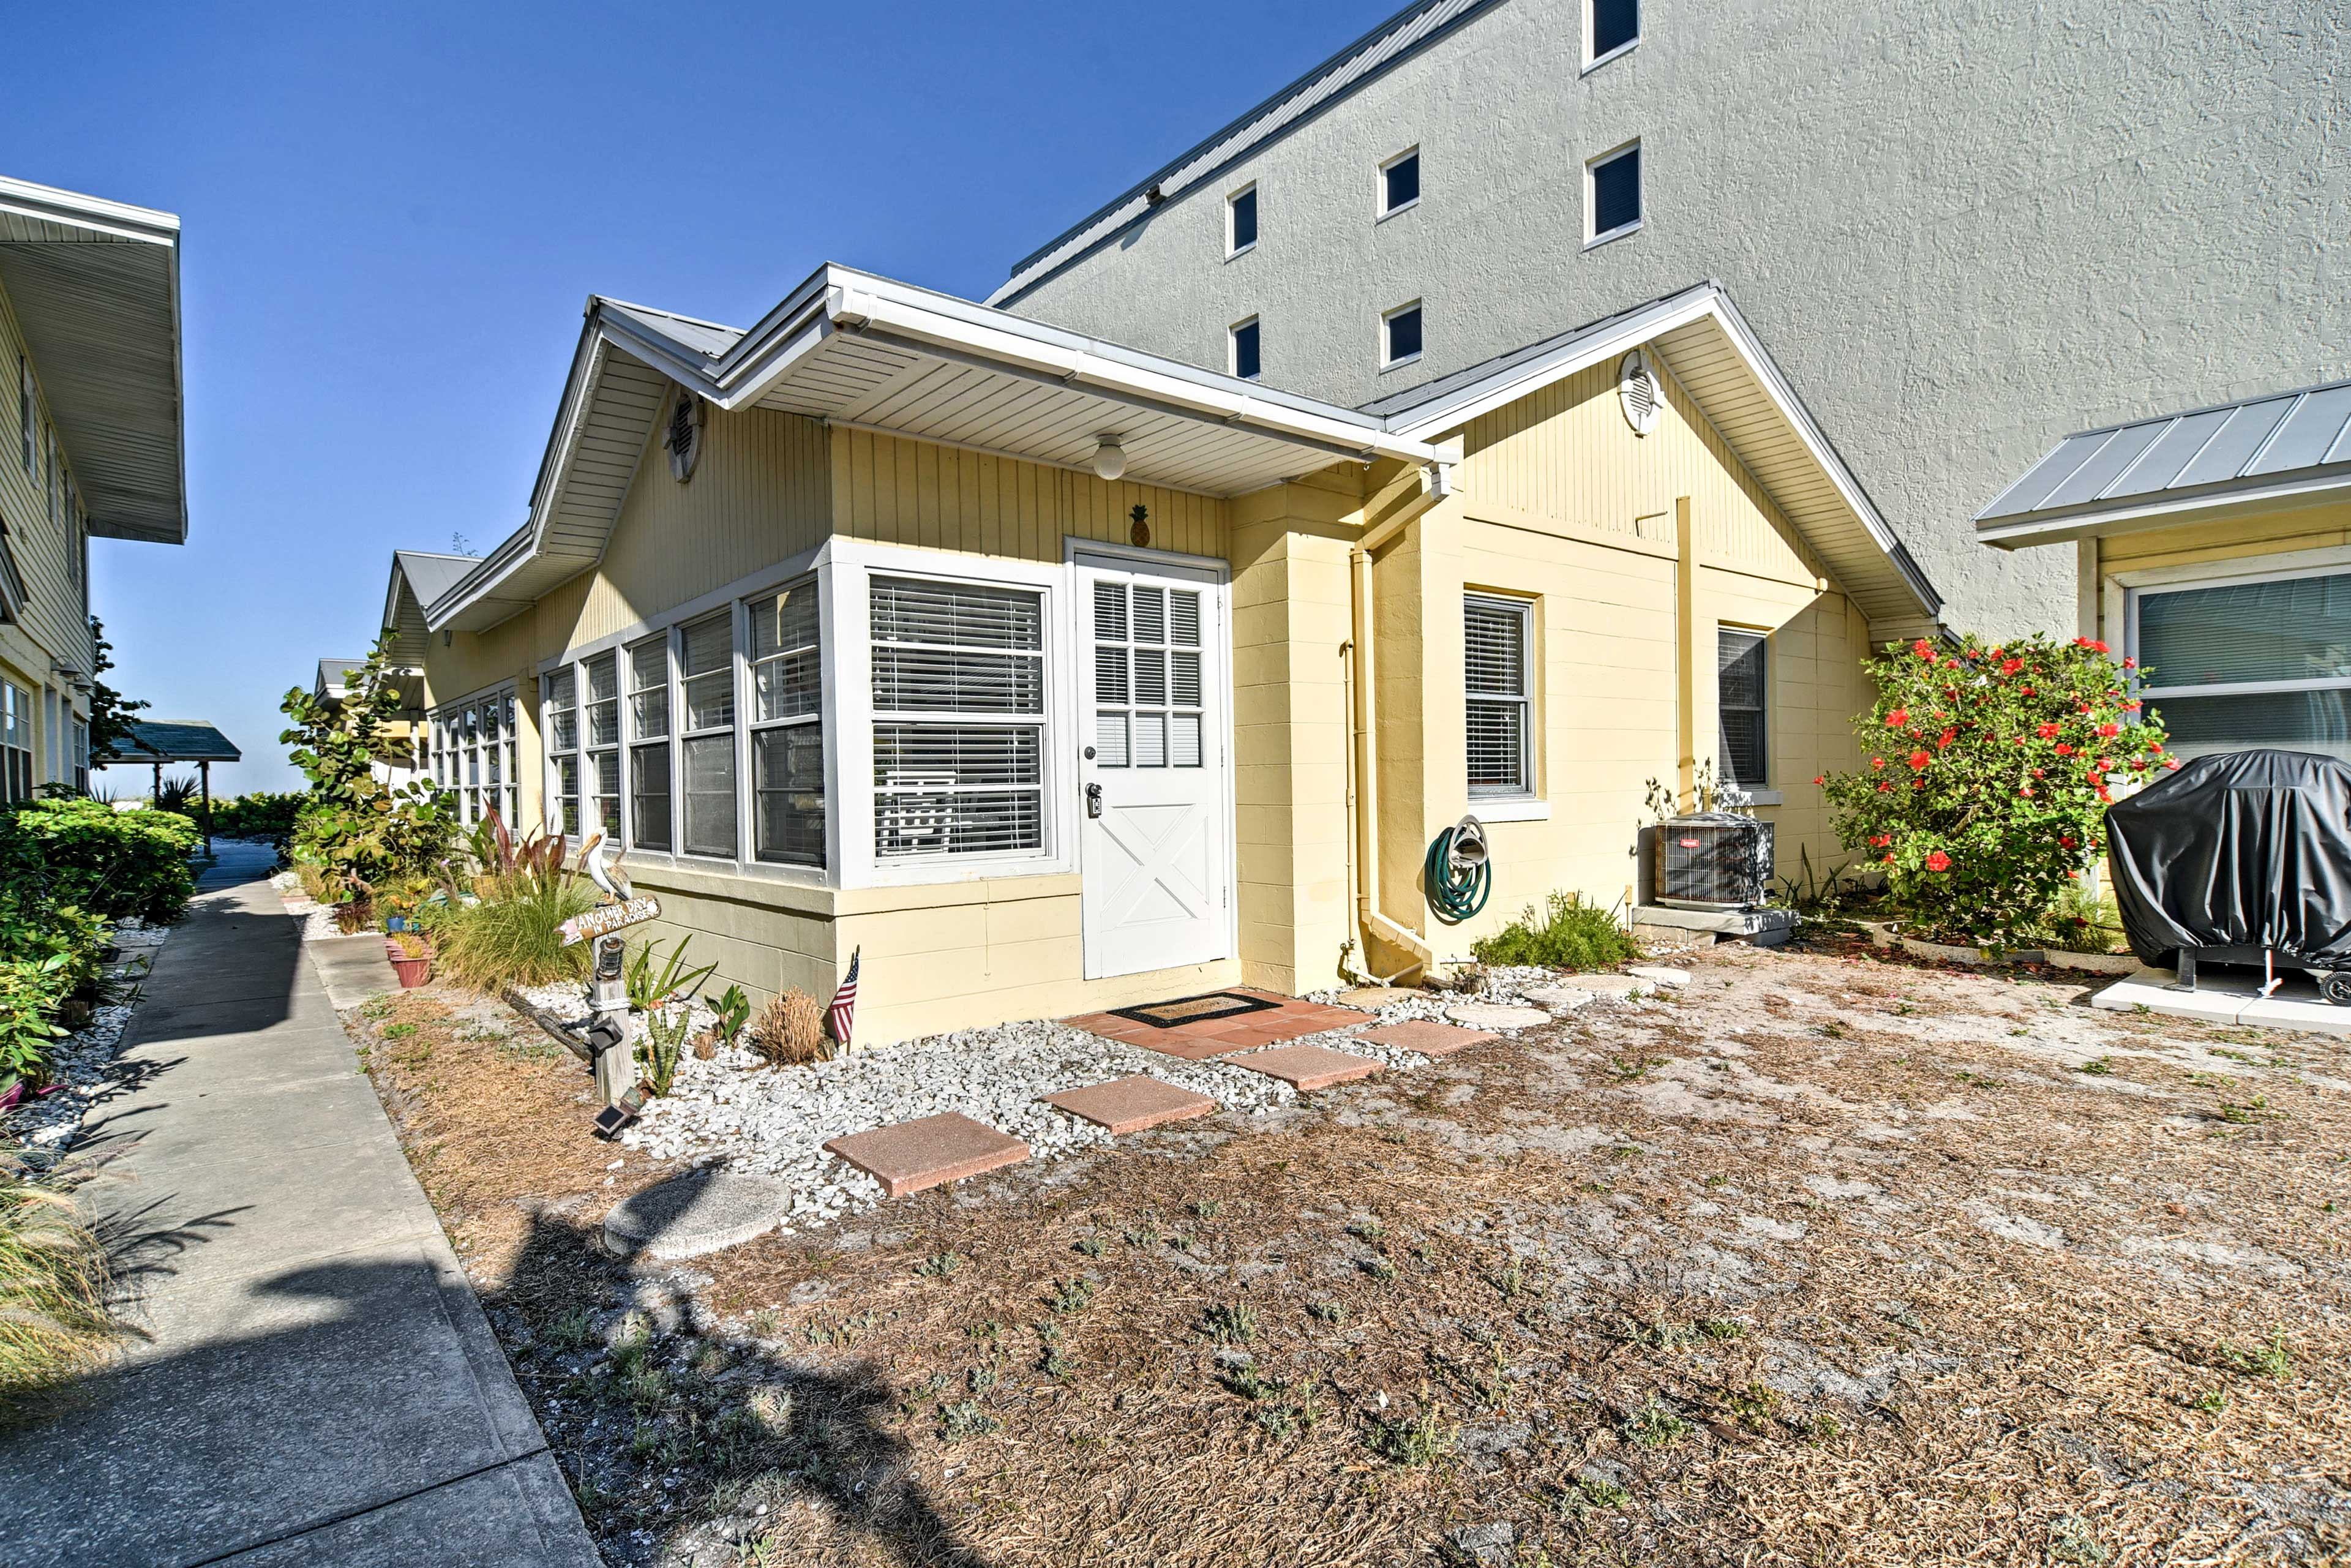 This gulfside home provides 2 bedrooms, 1 bathroom and all the modern comforts.